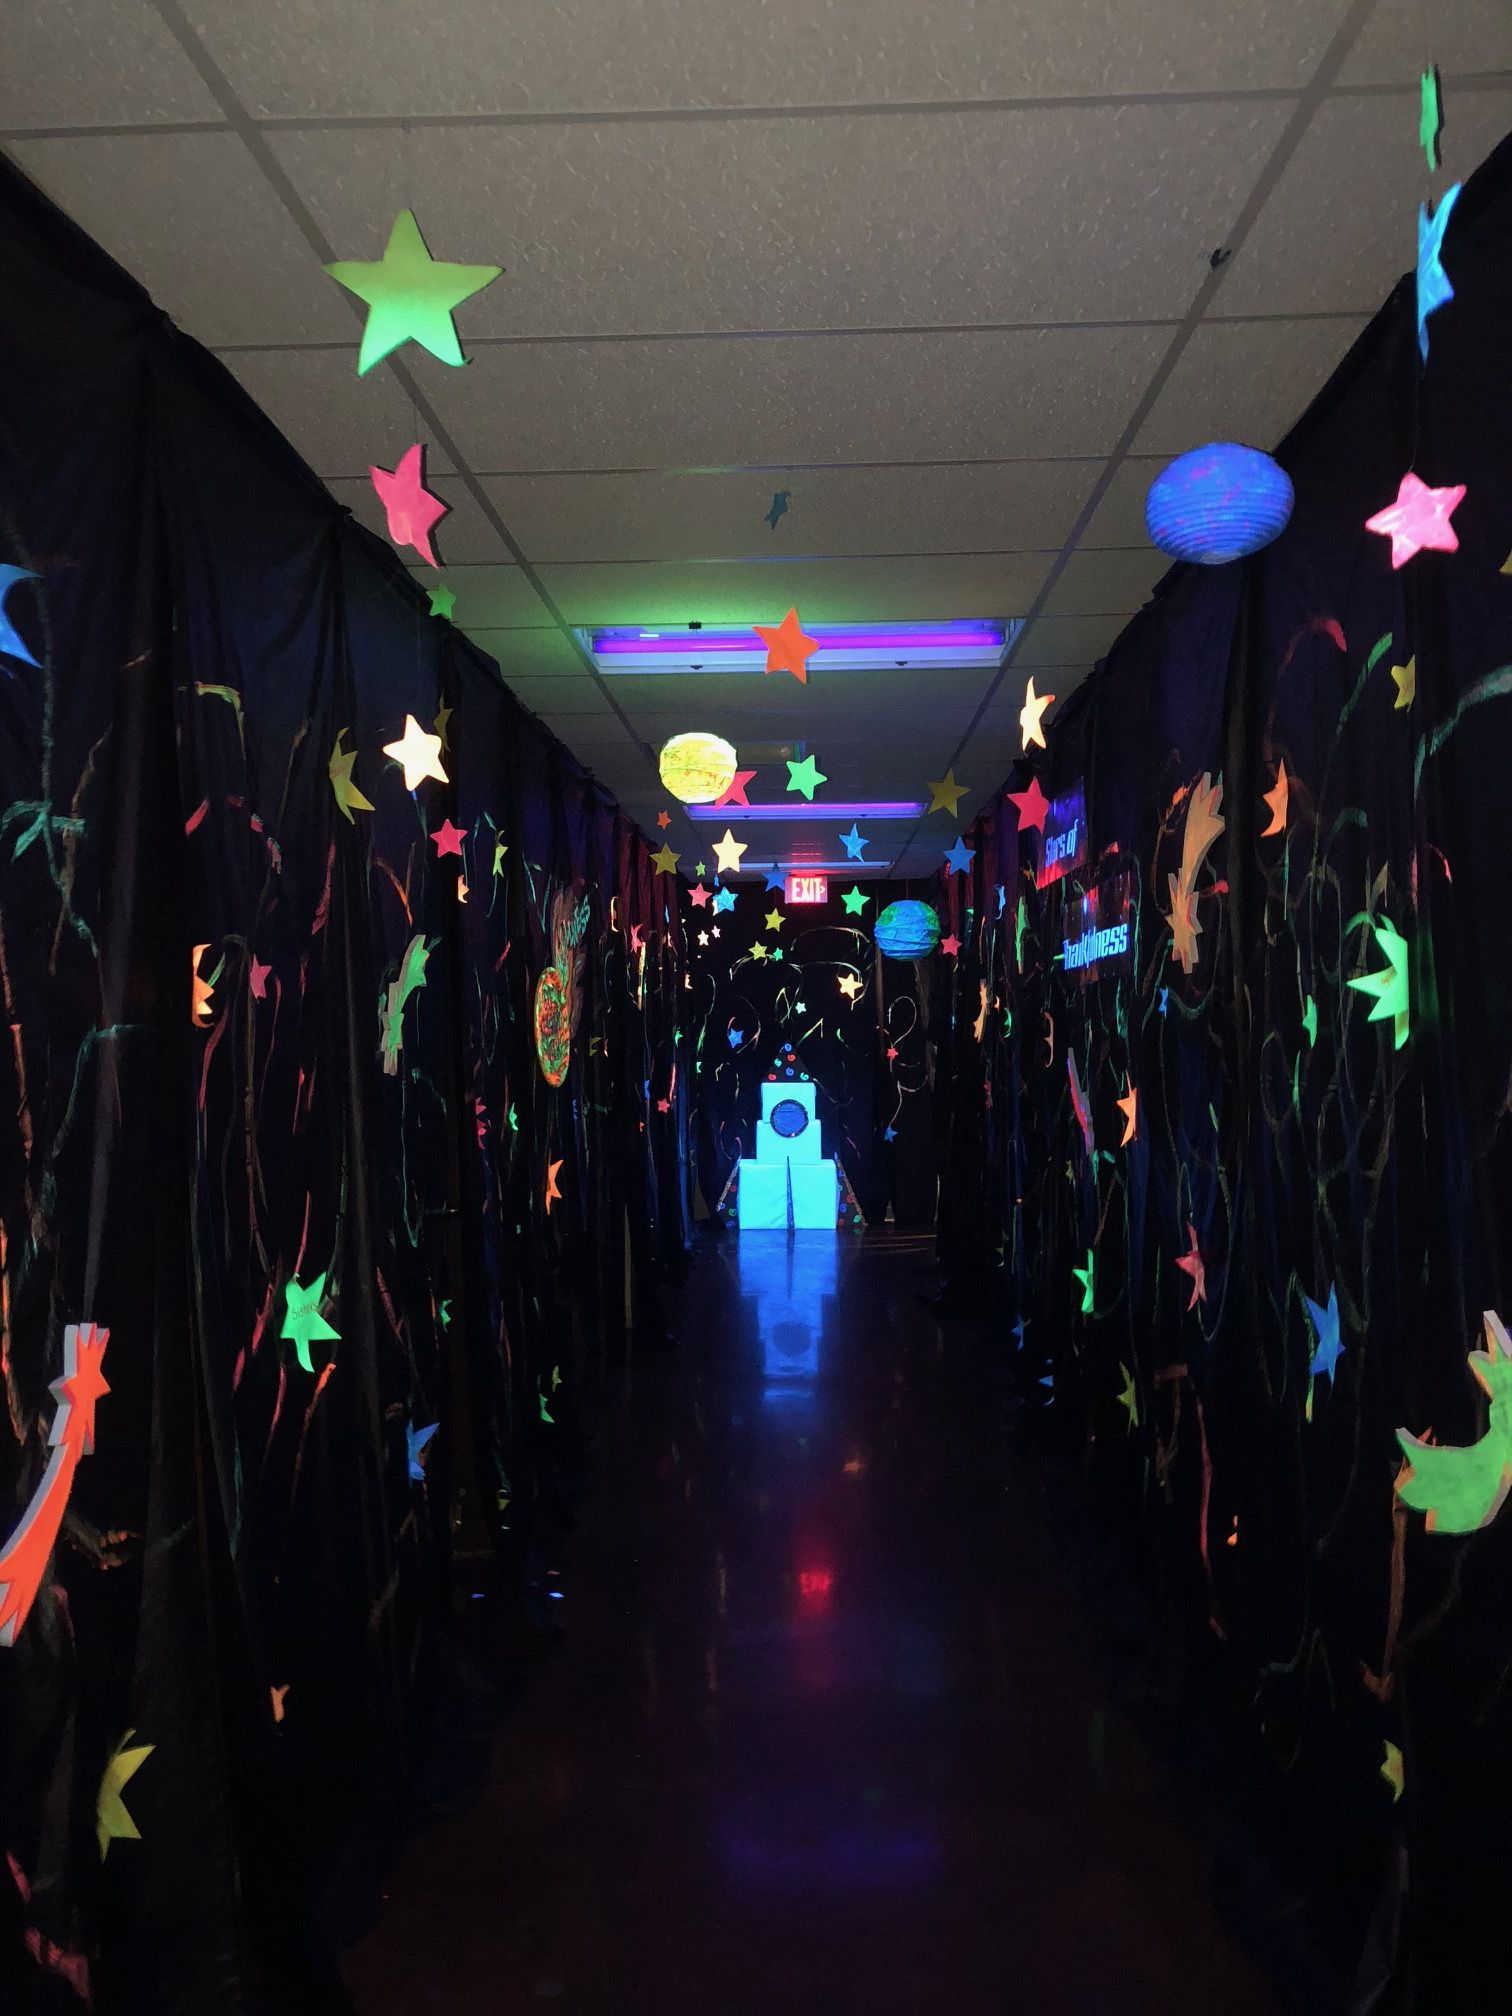 Hallway tip! Design one hallway with black lights! Paint paper stars, lanterns, and space shapes with glow-in-the-dark colors. (Note: You may wish to supervise this hallway in case any of your Voyagers are sensitive to the lights.) #outerspaceparty